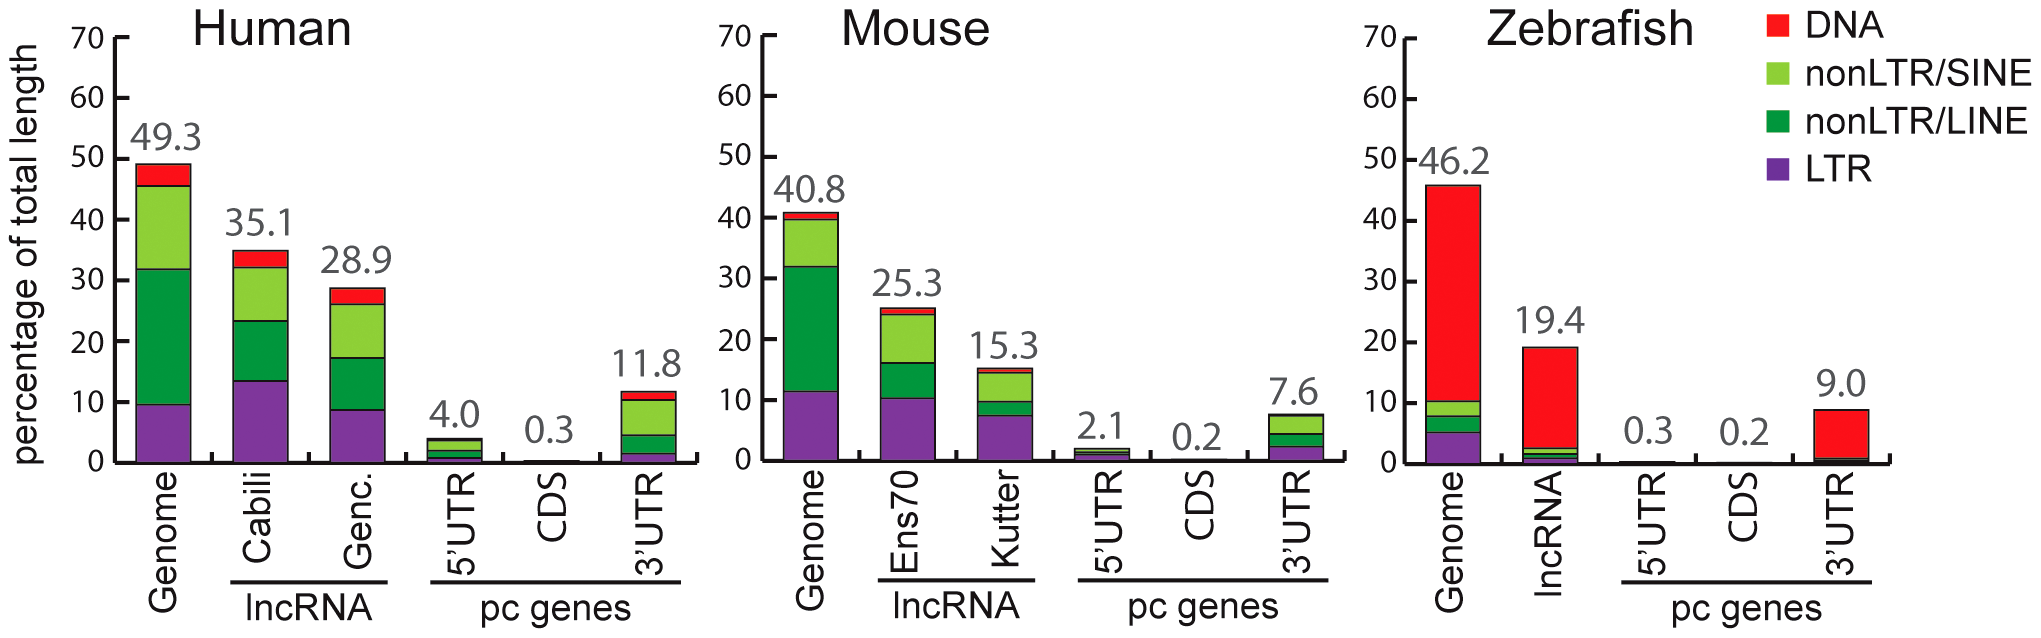 Coverage of different TE classes in genome, lncRNA, and protein-coding exons in human, mouse, and zebrafish.